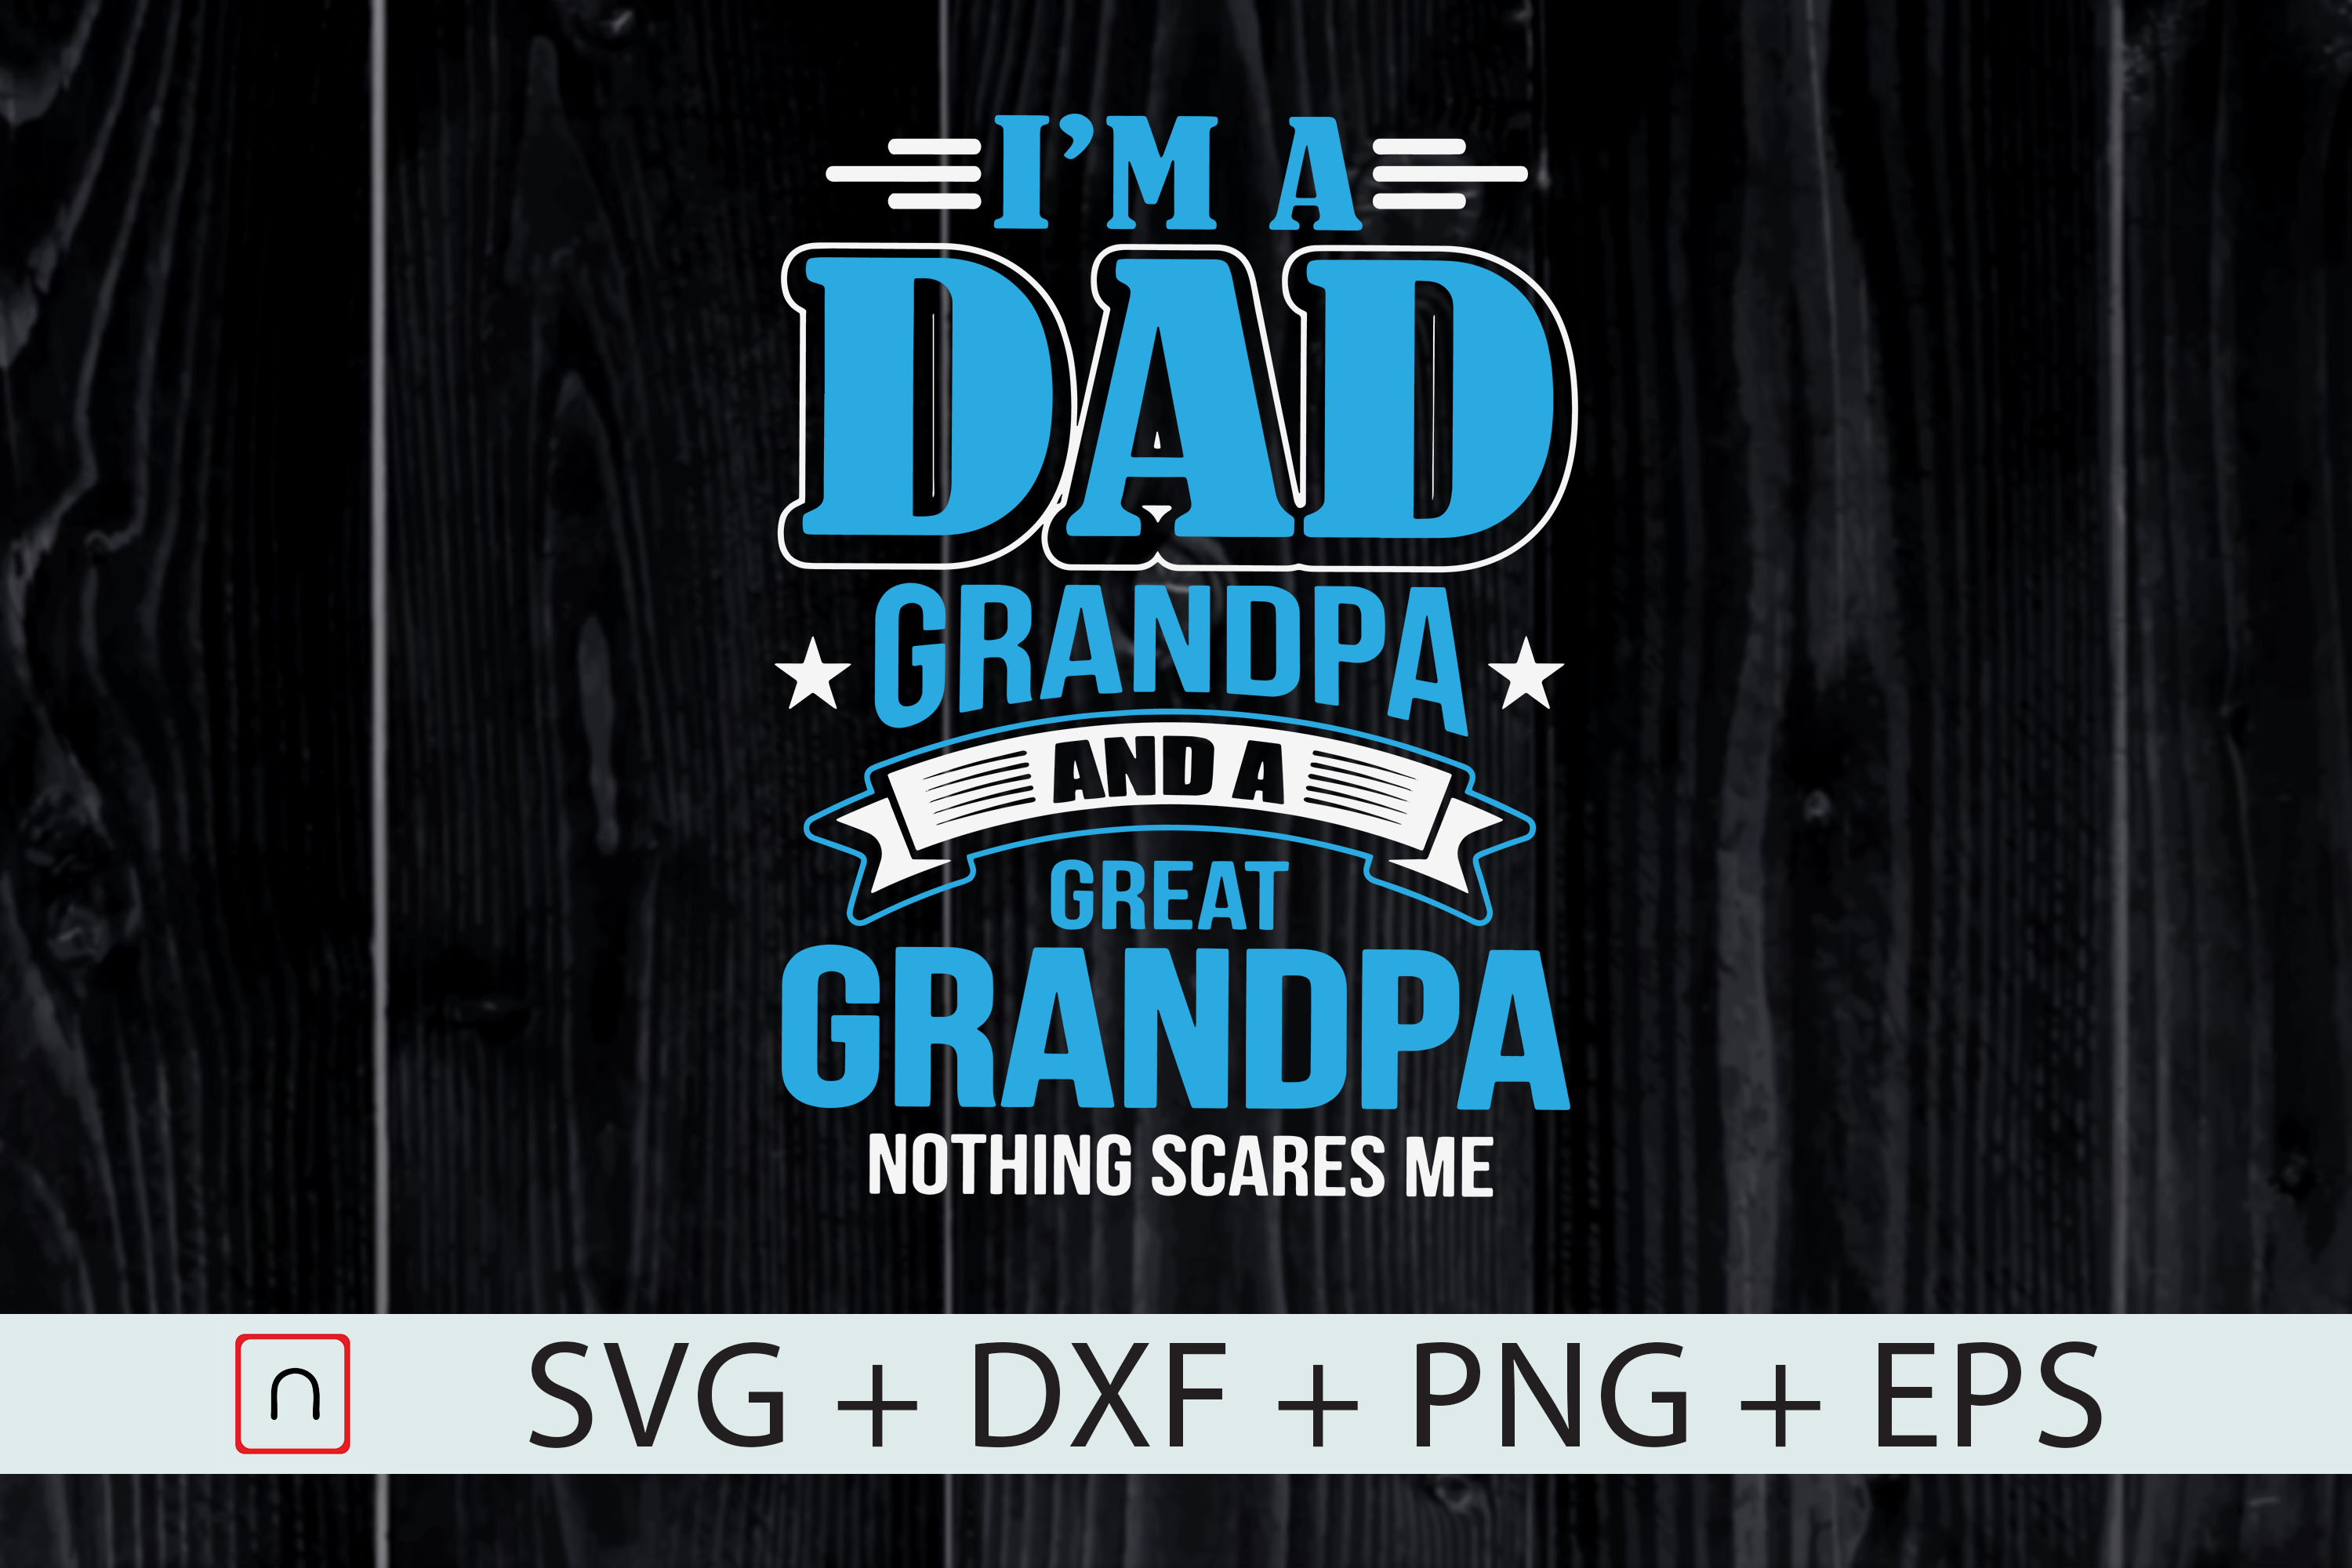 Download Free I M A Dad Grandpa And Great Grandpa Svg Graphic By Novalia for Cricut Explore, Silhouette and other cutting machines.